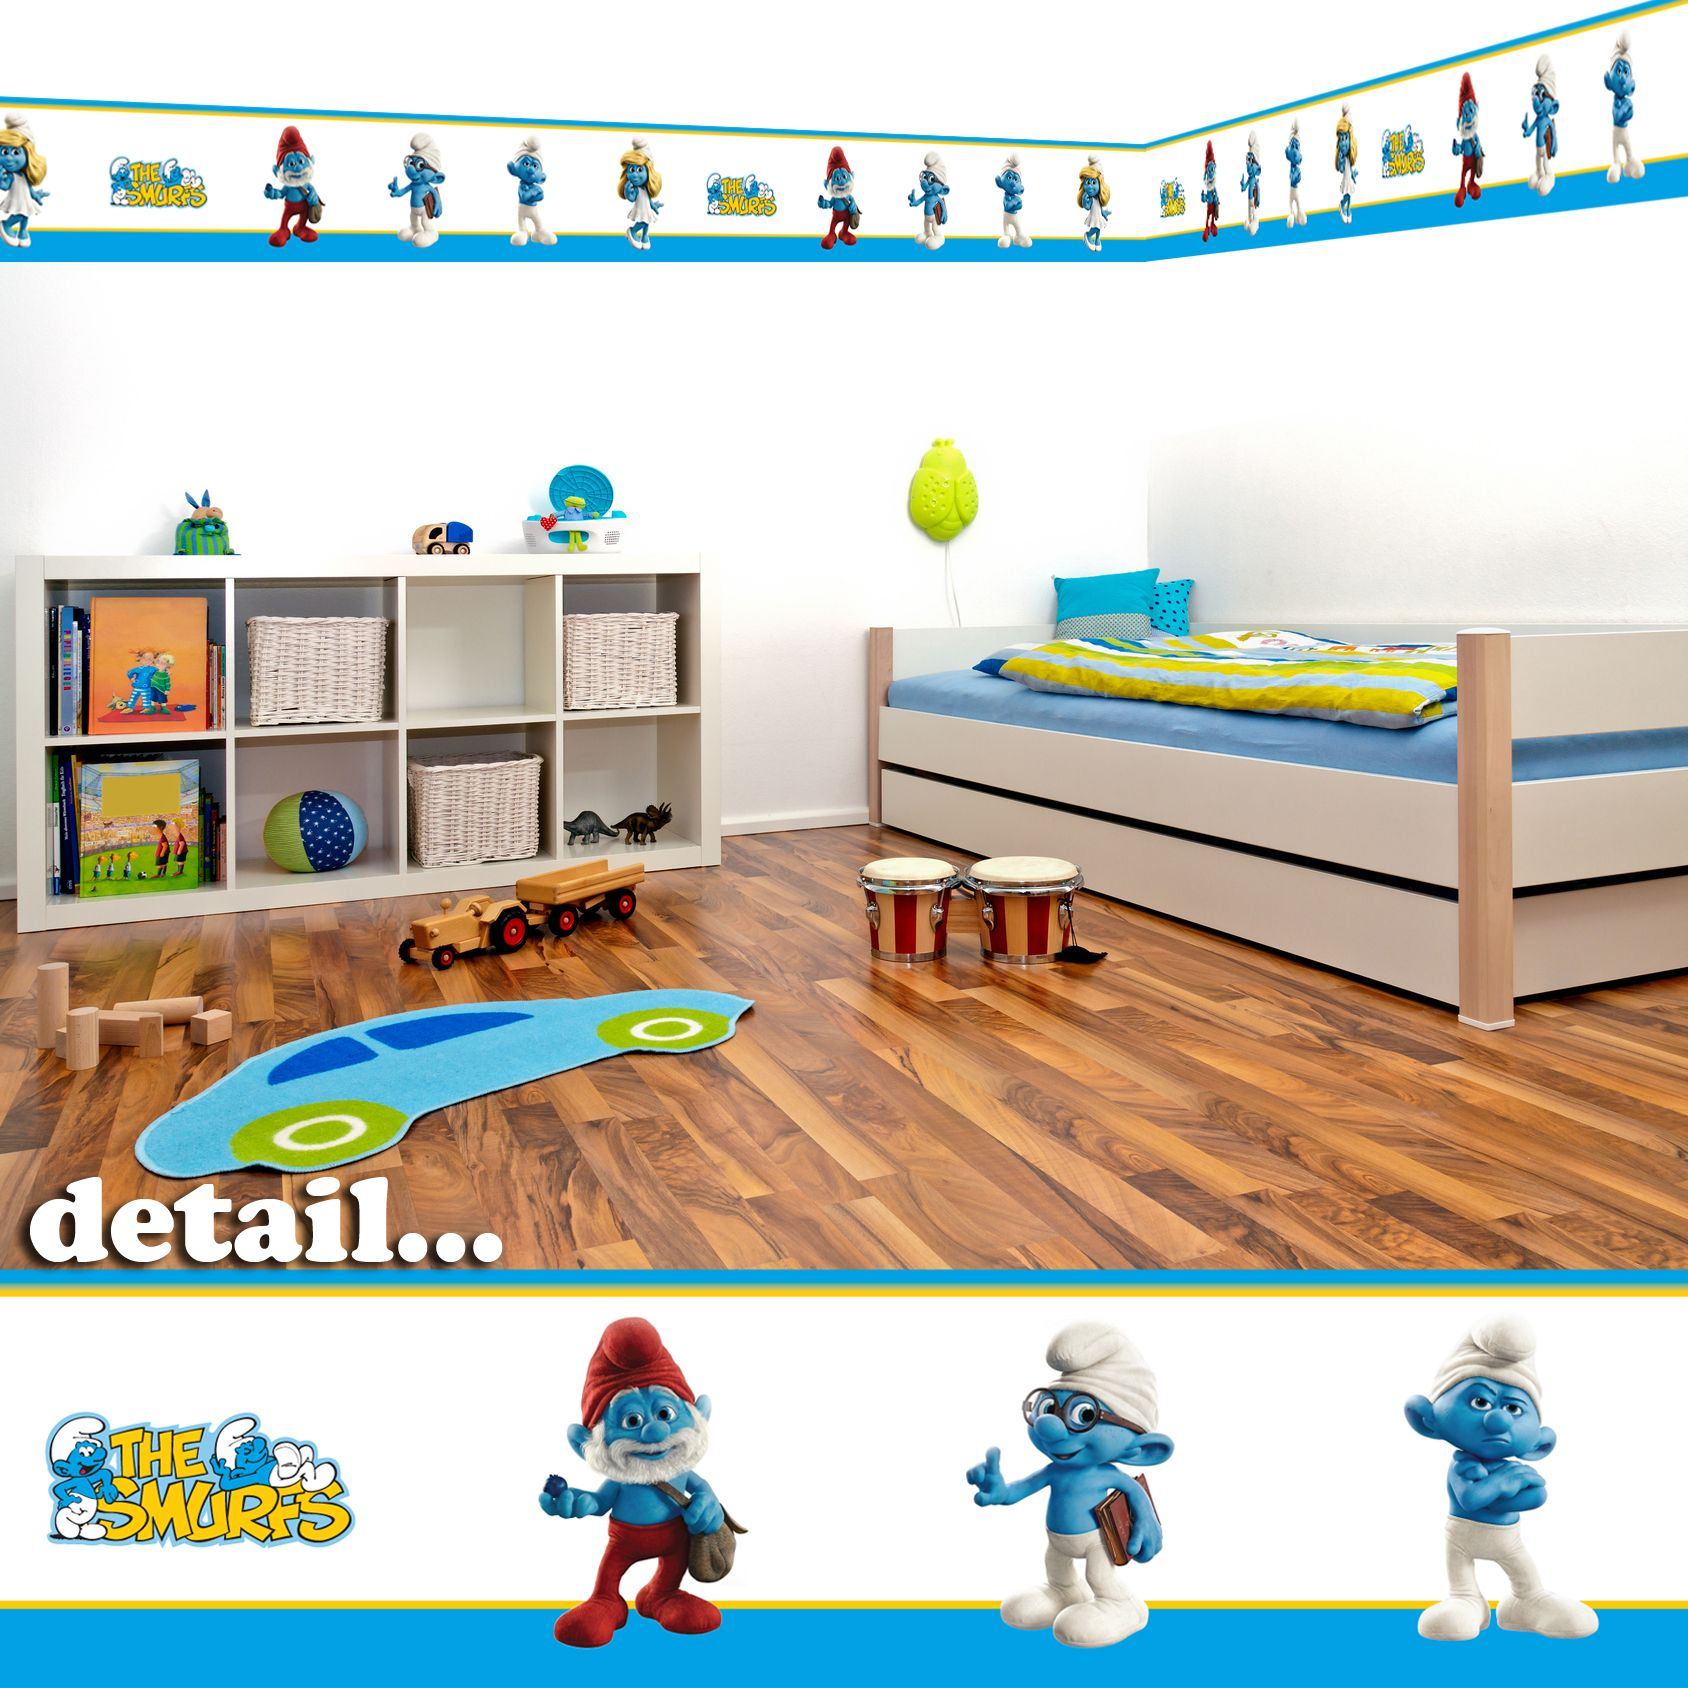 Details about Smurfs Self Adhesive Decorative Wall Border ...